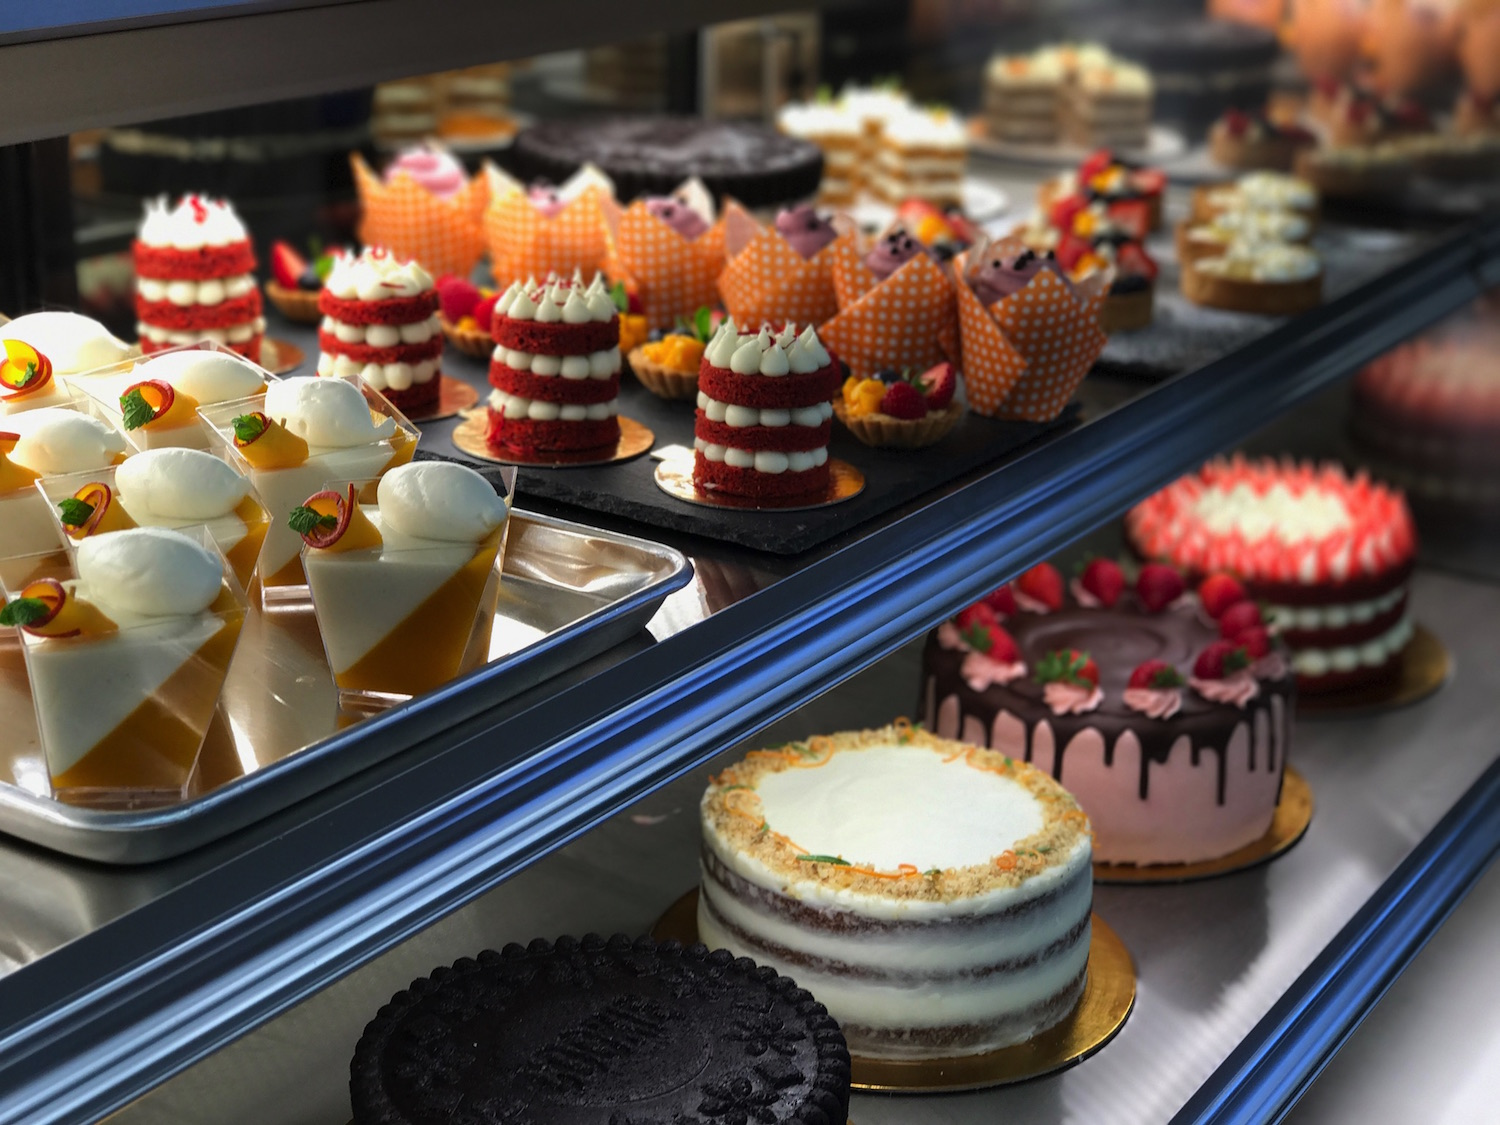 French patisserie confections